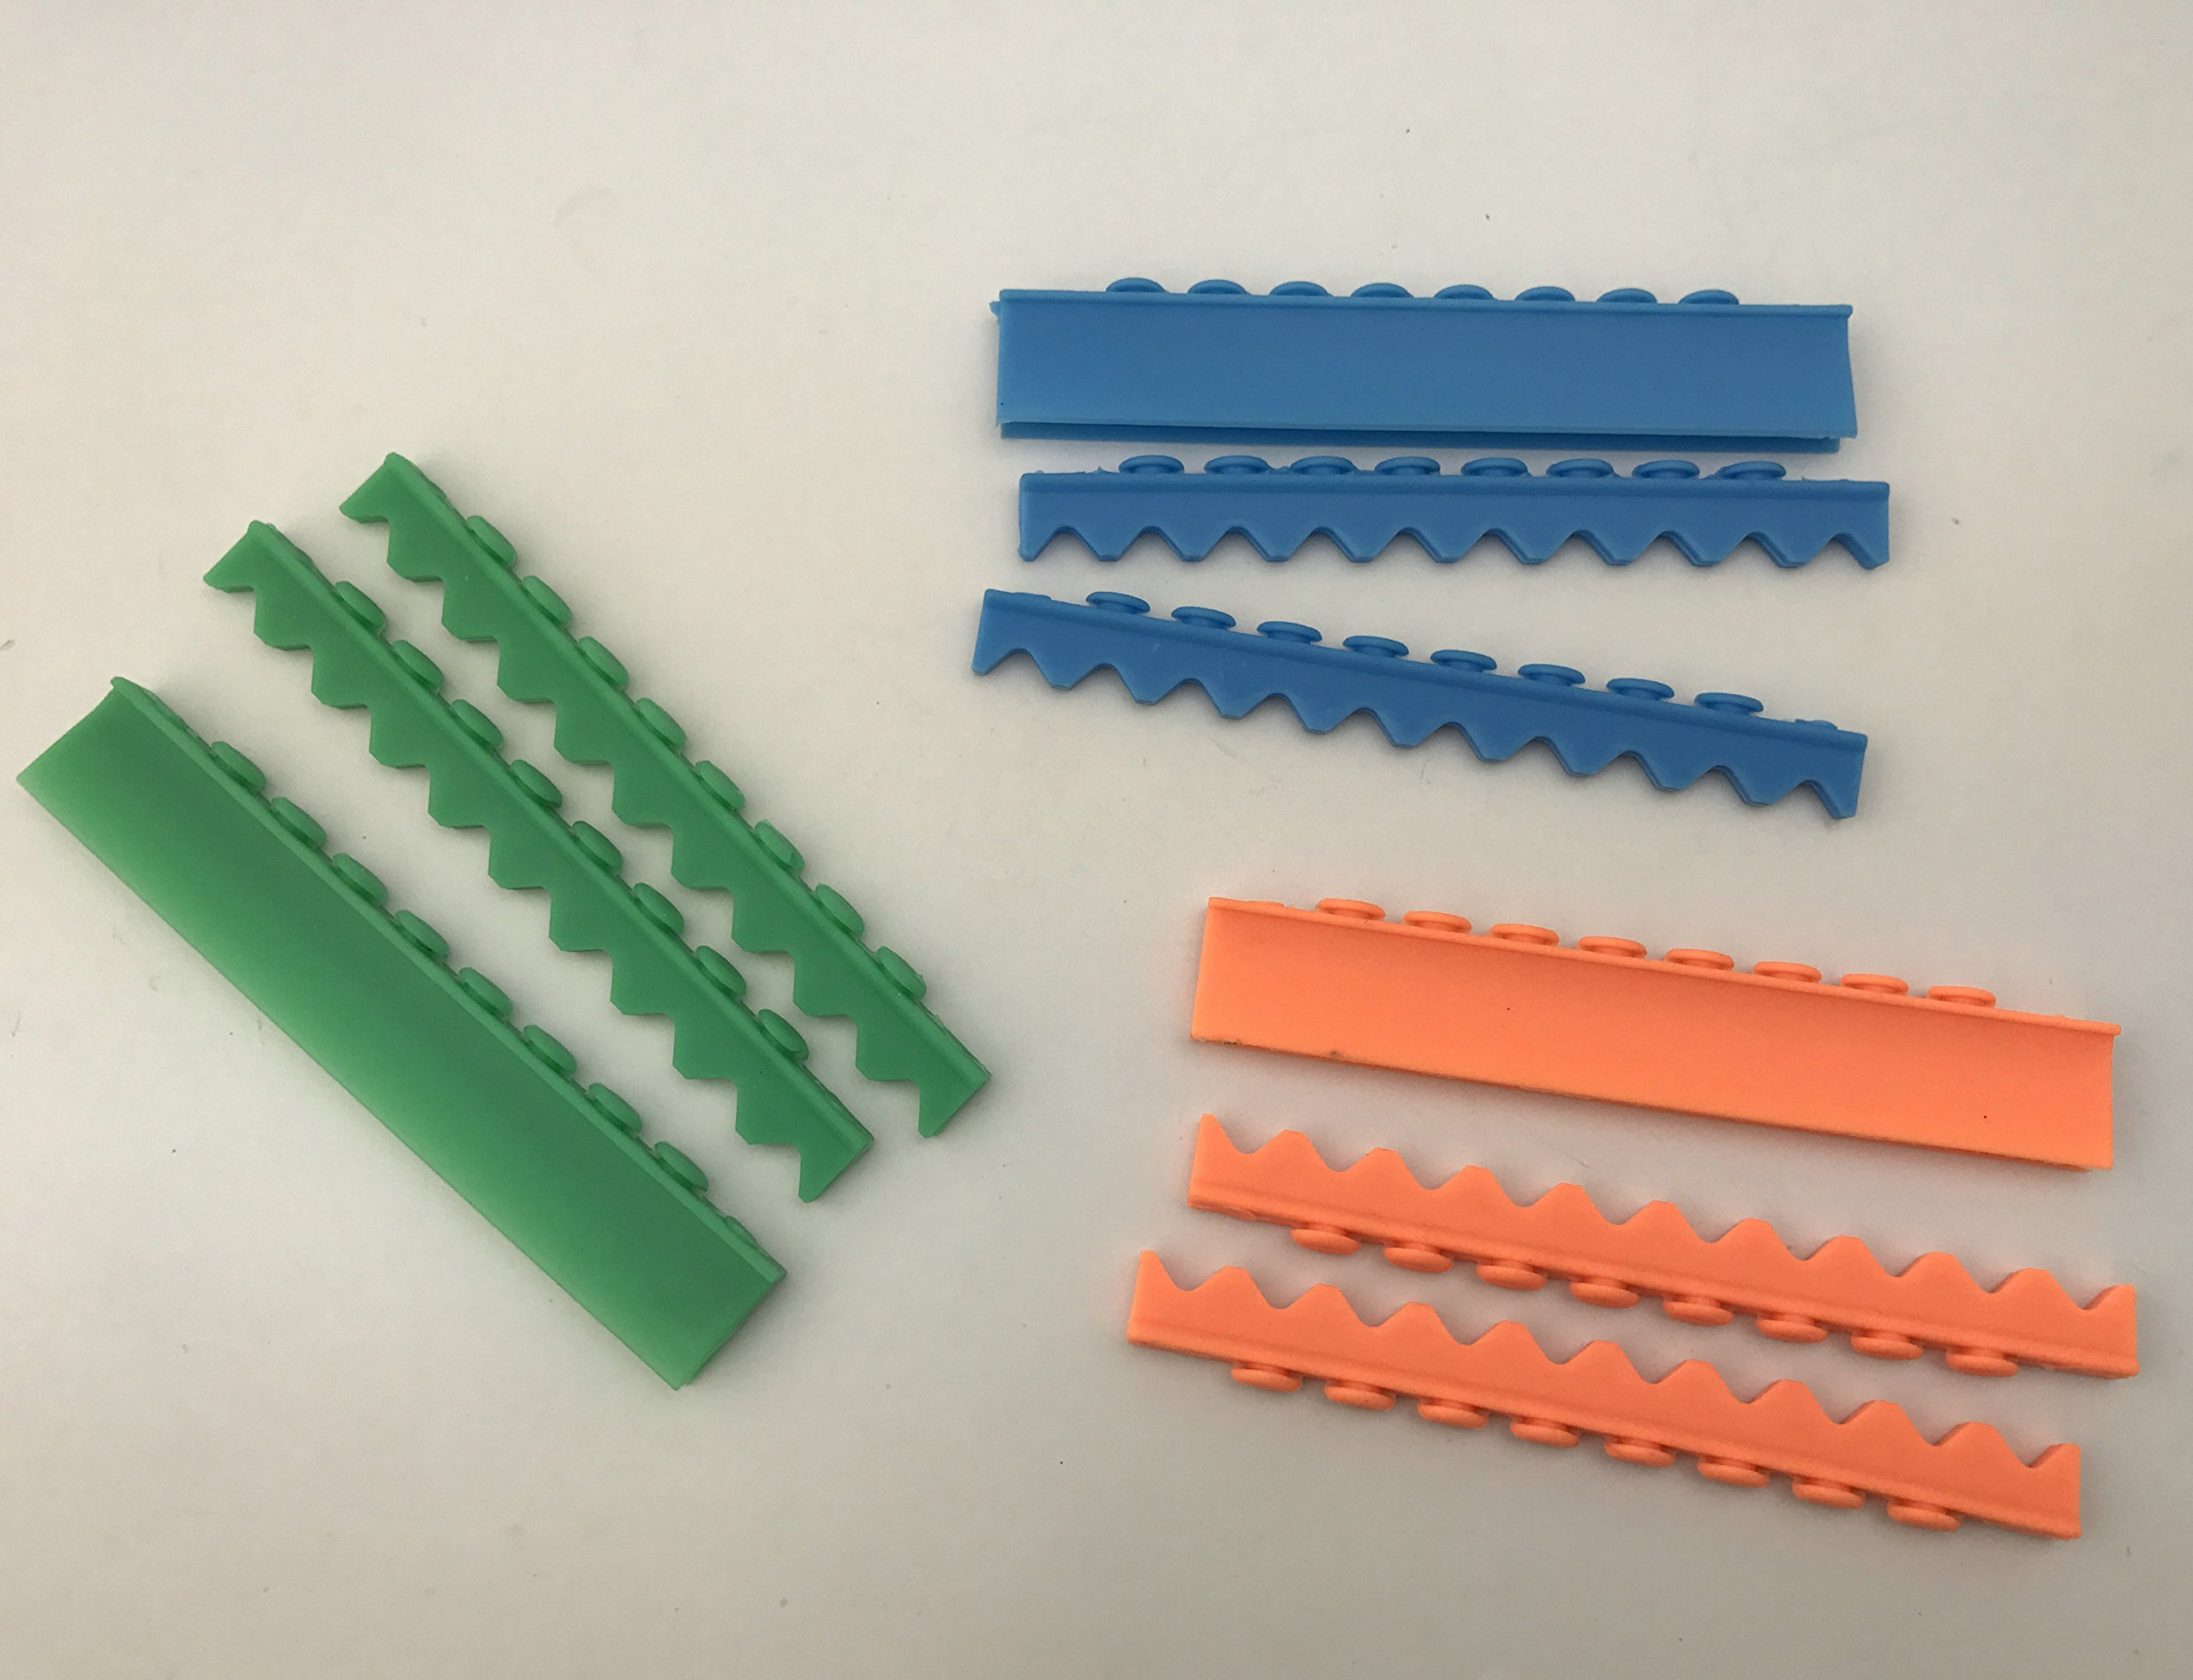 3sets Silicone for 10 Instruments Dental Surgical Sterilization Cassette Tray Racks